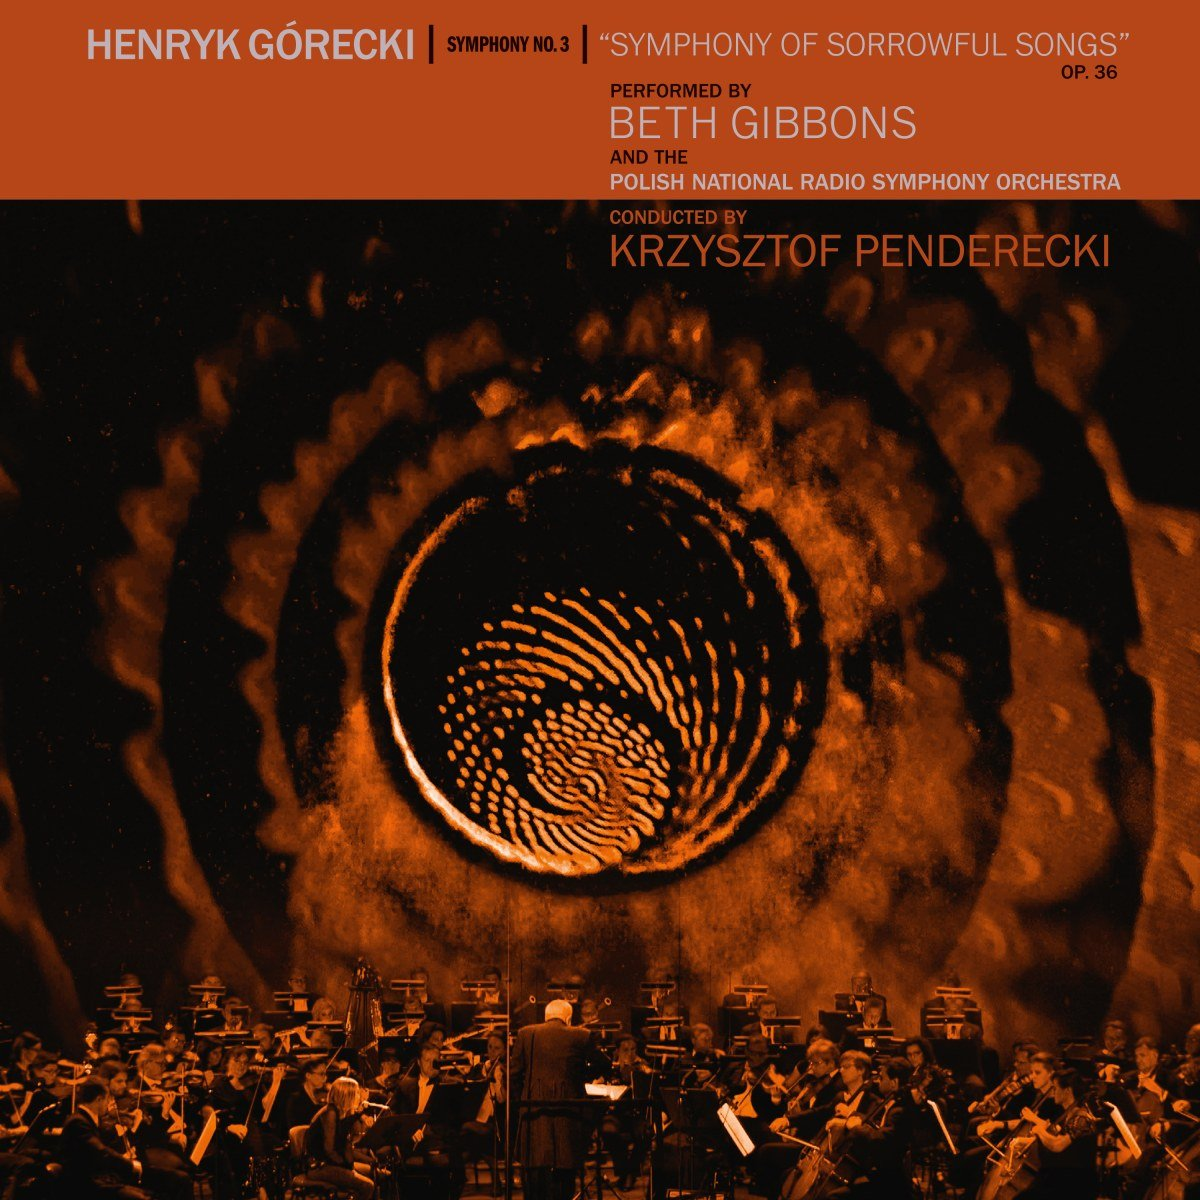 Beth Gibbons, Krzysztof Penderecki and The Polish National Radio Symphony Orchestra